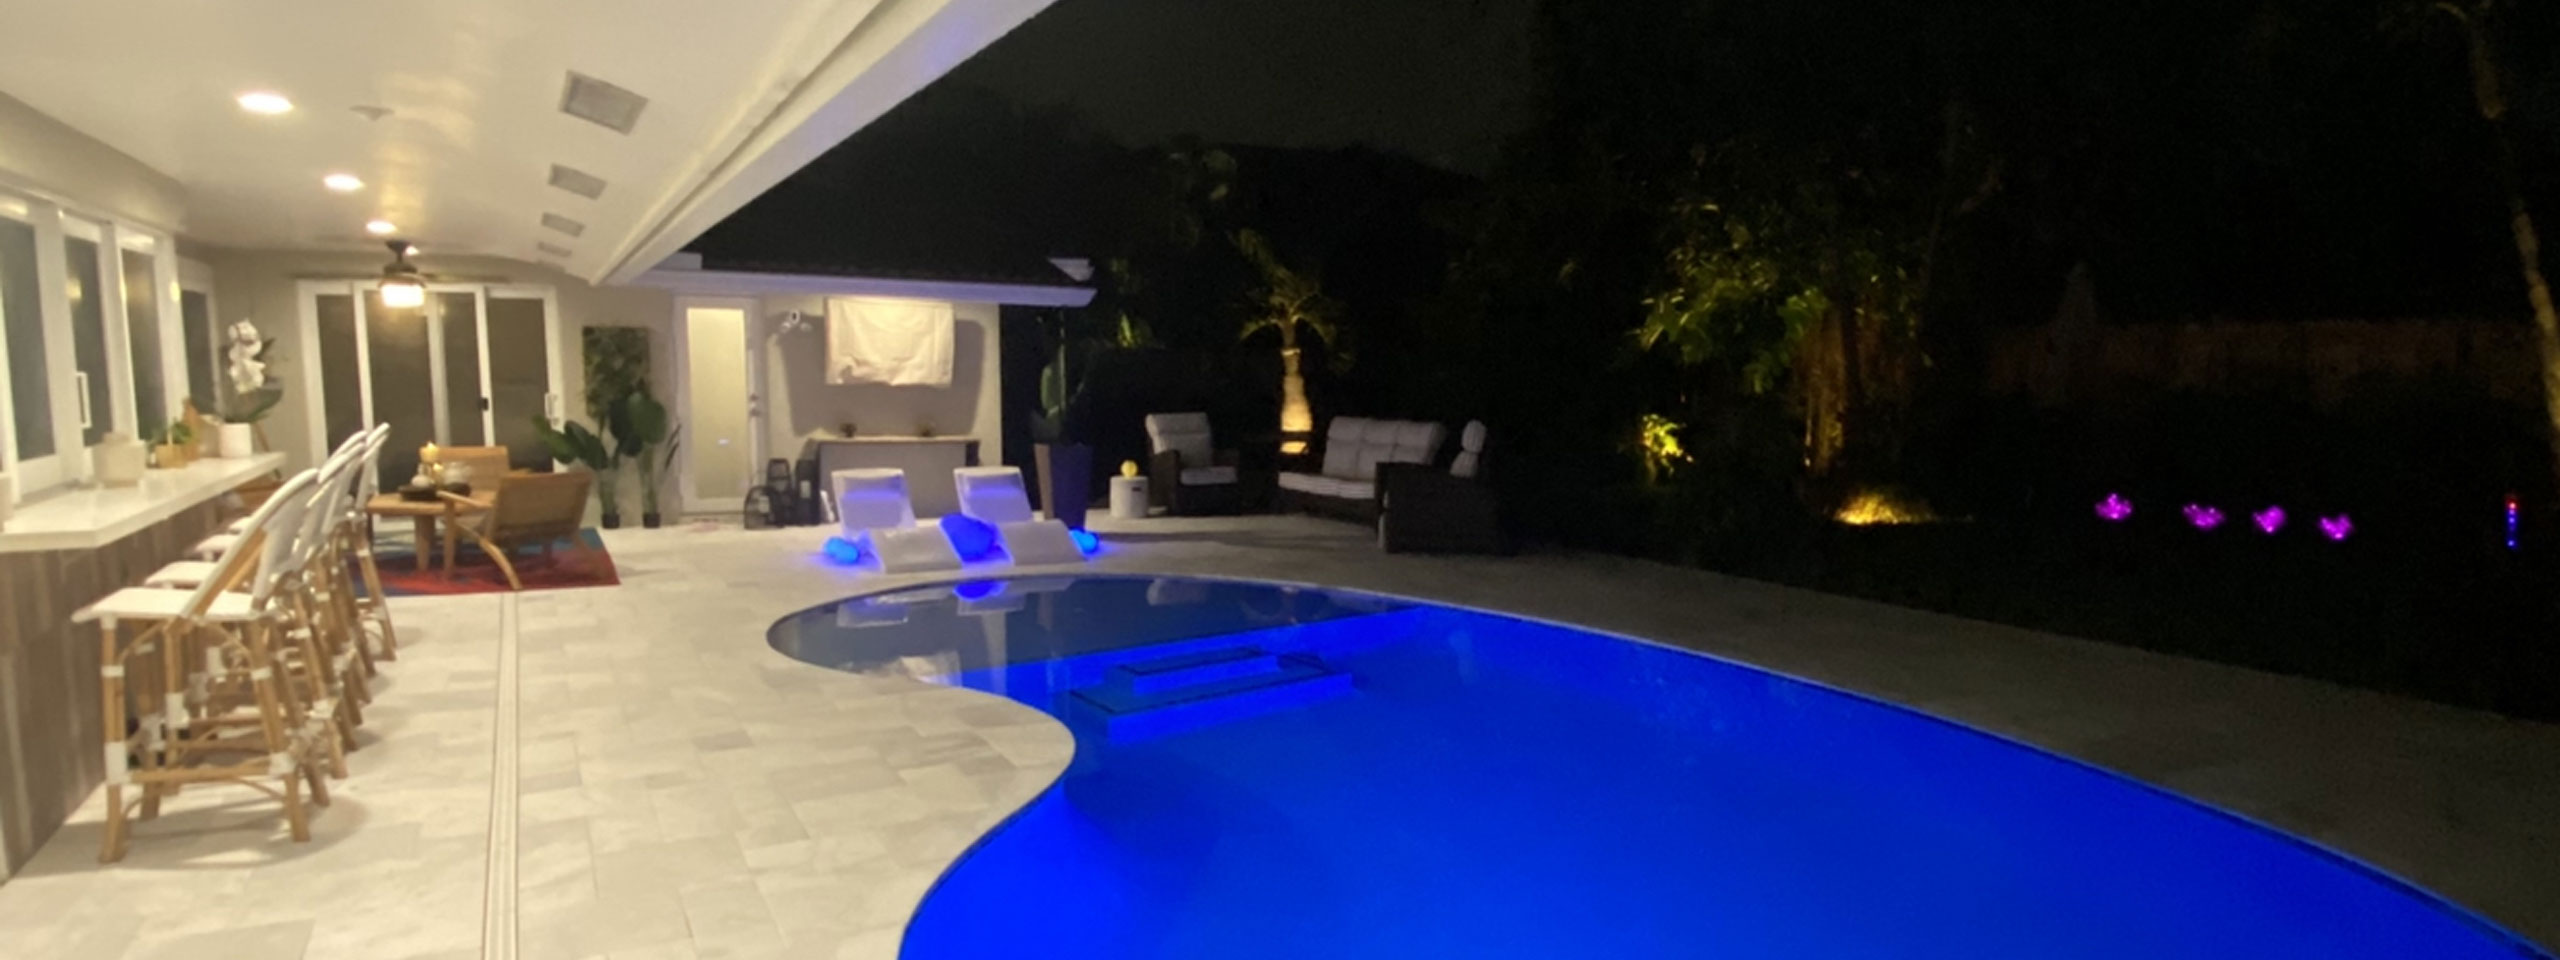 After All What Is The Best Option For My Pool Deck All Seal Exteriors